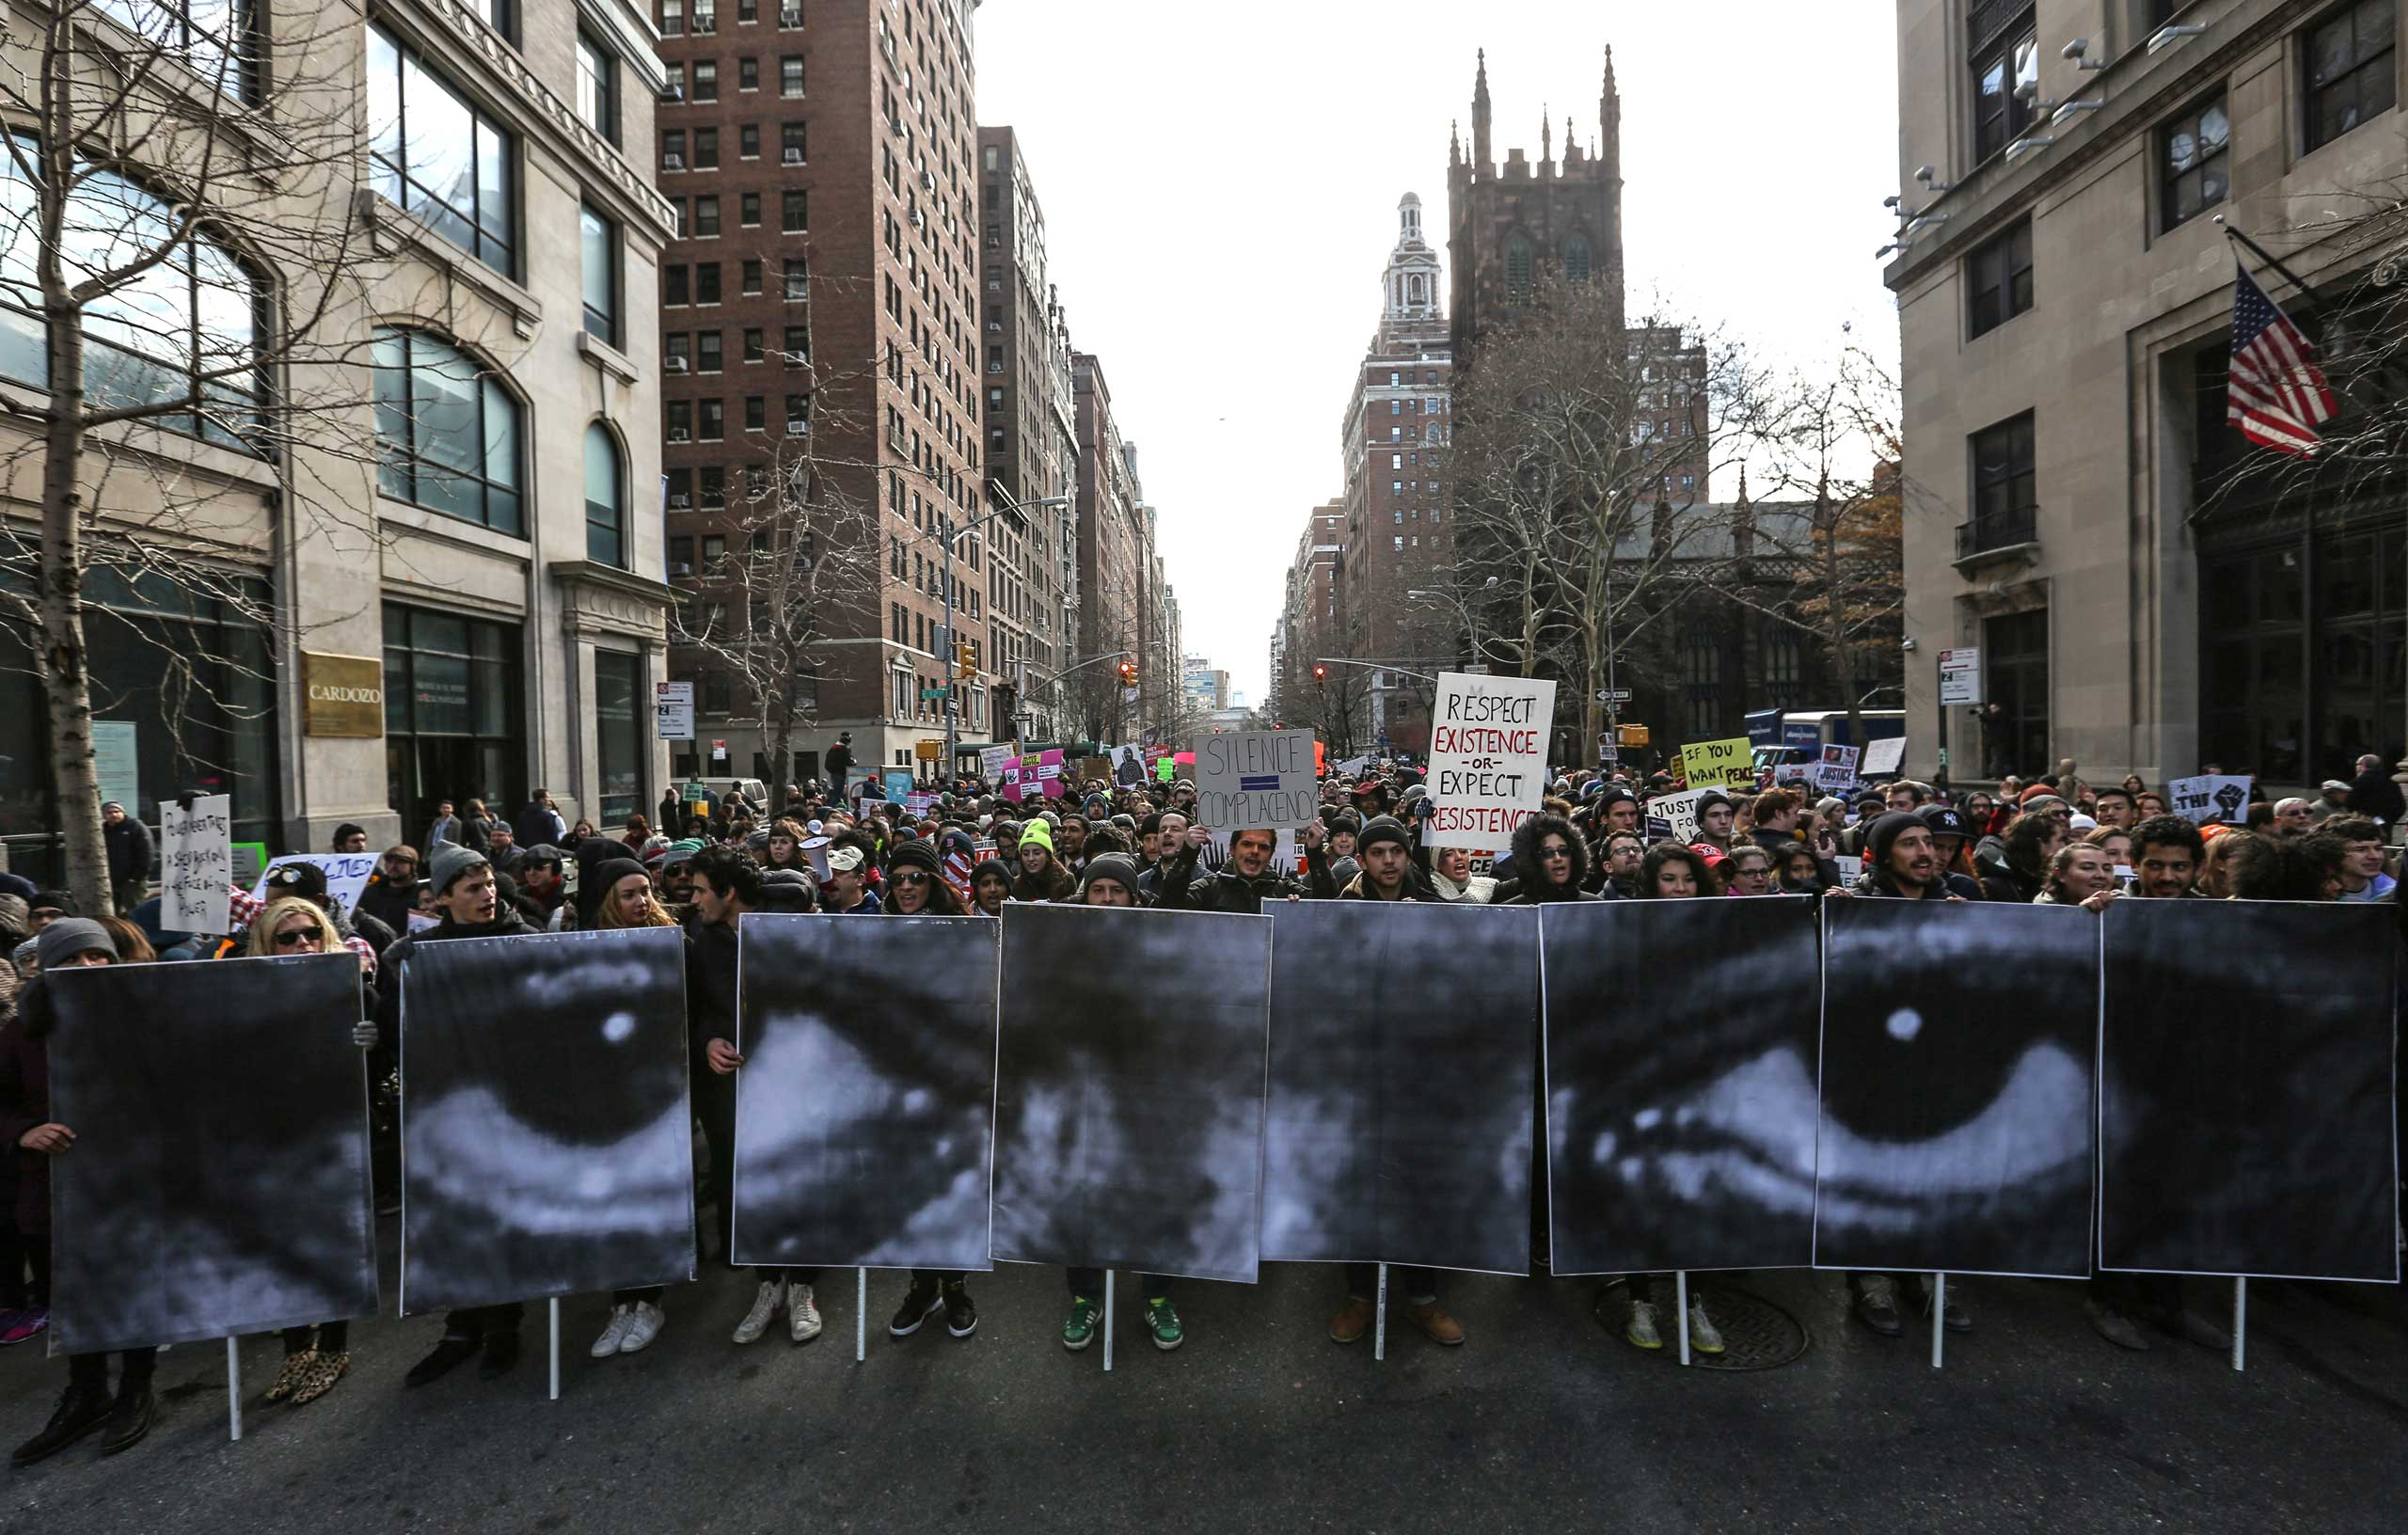 Thousands of people gather at Washington Square to march through Manhattan to protest police violence on Dec. 13, 2014 in New York City.